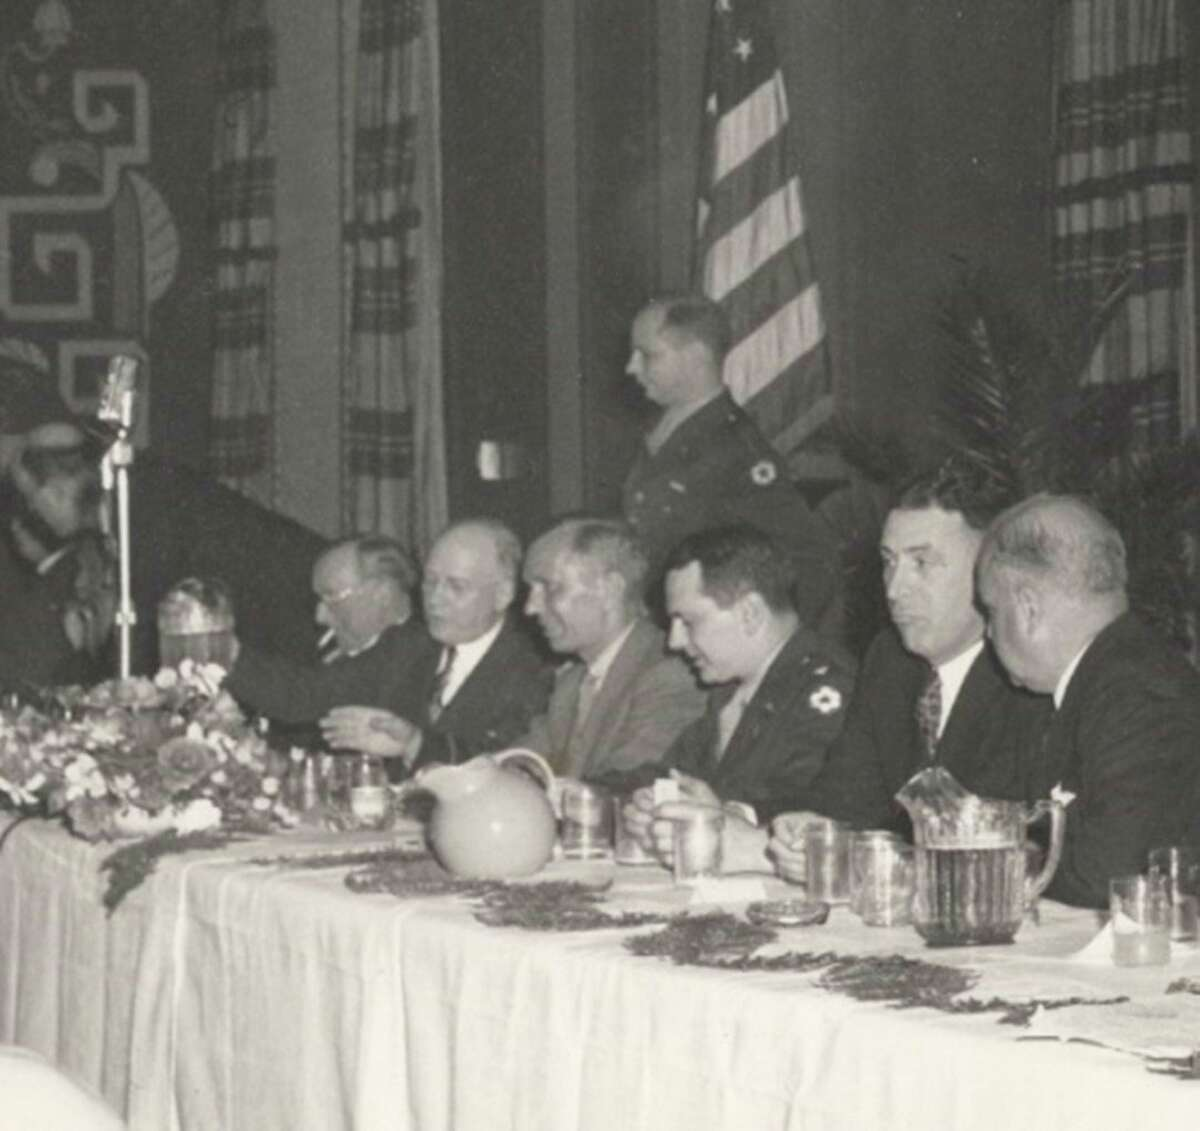 Captain Carl A. Gerstacker is standing behind R. Hoe company officials at a dinner elebrating the company's WWII work, April 16, 1945. Courtesy Rollin M. Gerstacker Foundation (Photo Provided)